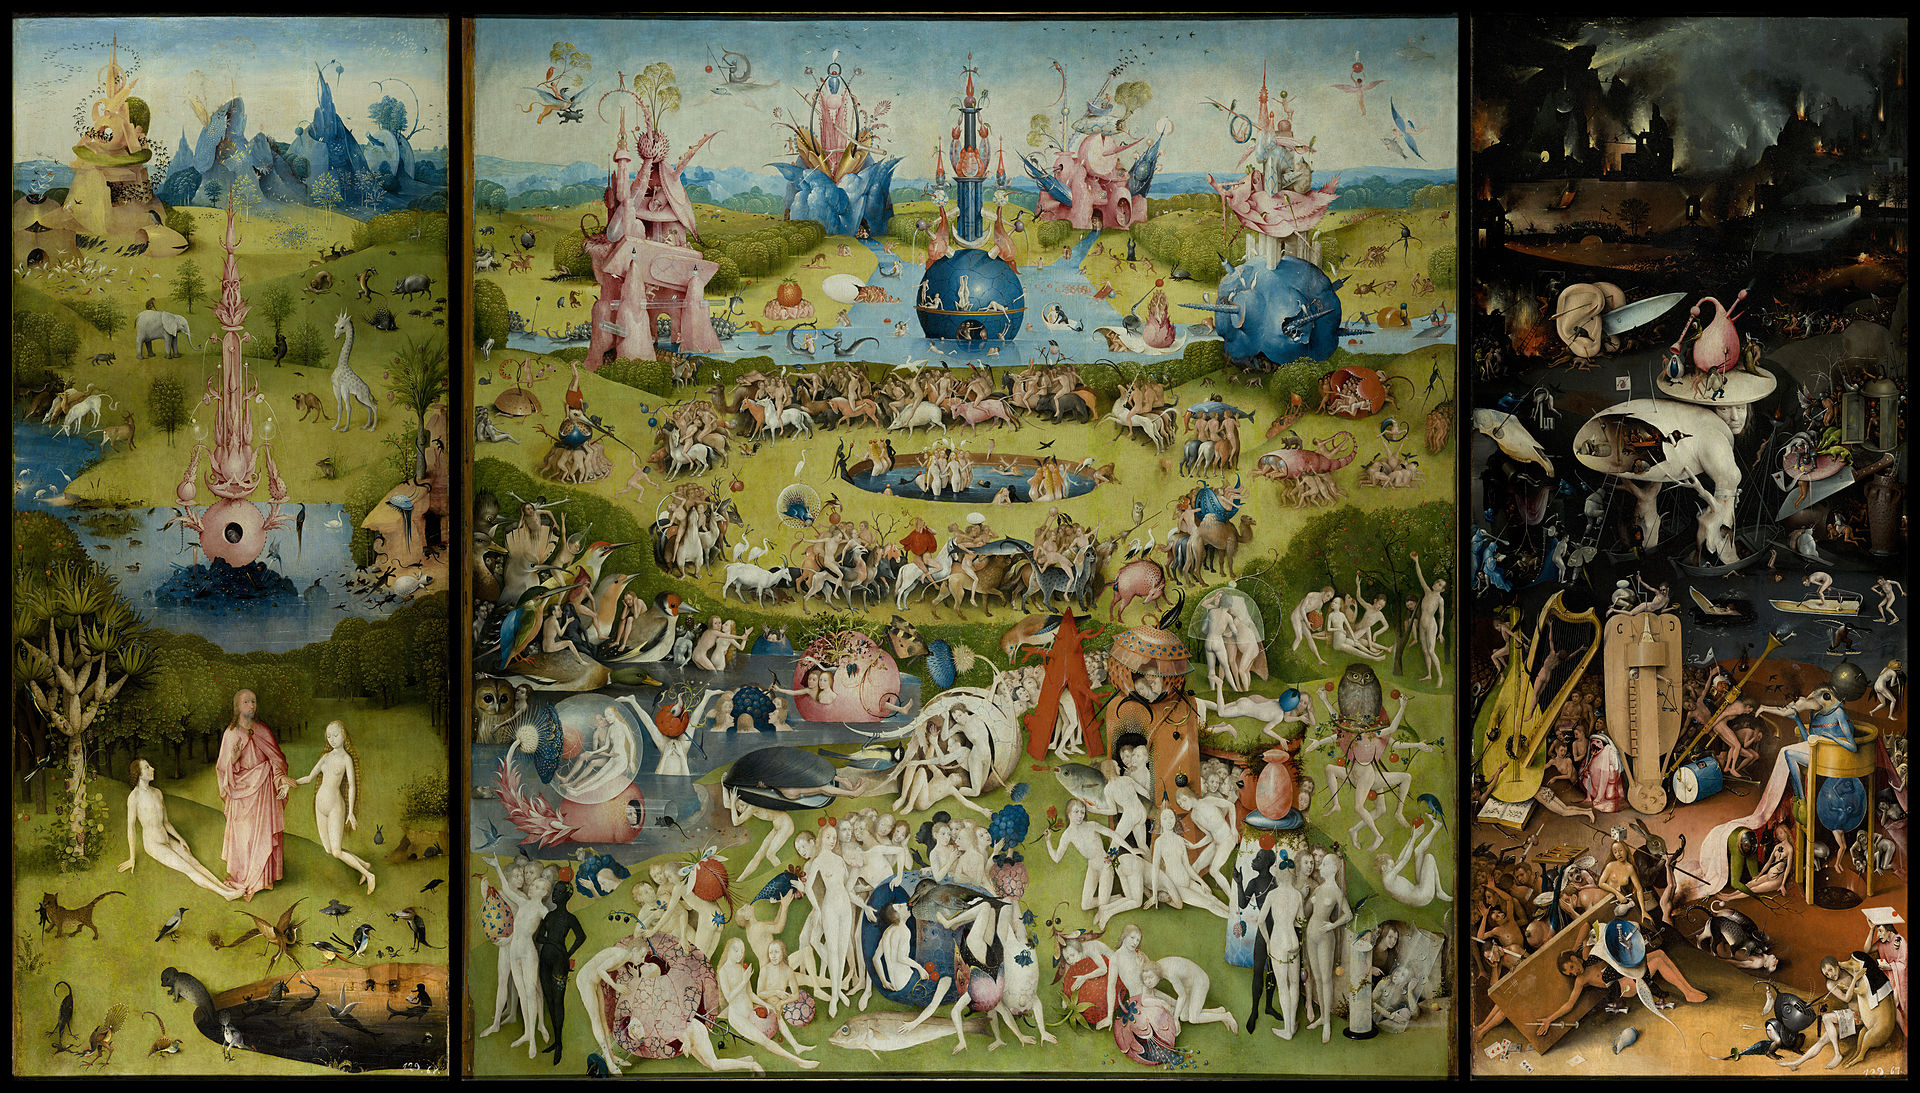 Garden of Earthly Delights Prado Museum